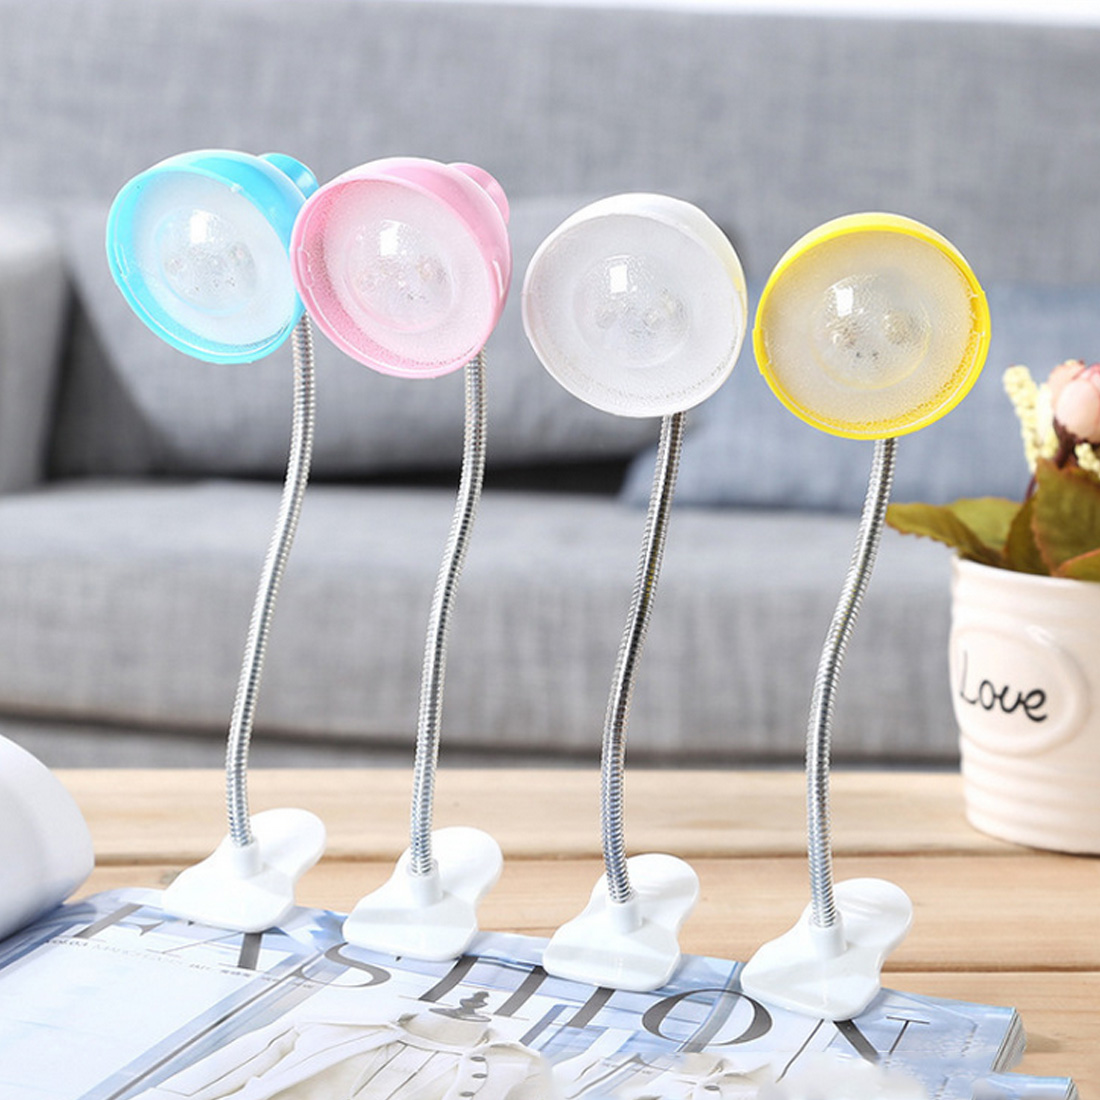 Adjustable Clip-on Night Light Soft Lighting Effect Reading Lamps Mini Portable Cute LED Book Light Flexible Adjustable Clip-on Night Light Soft Lighting Effect Reading Lamps Mini Portable Cute LED Book Light Flexible